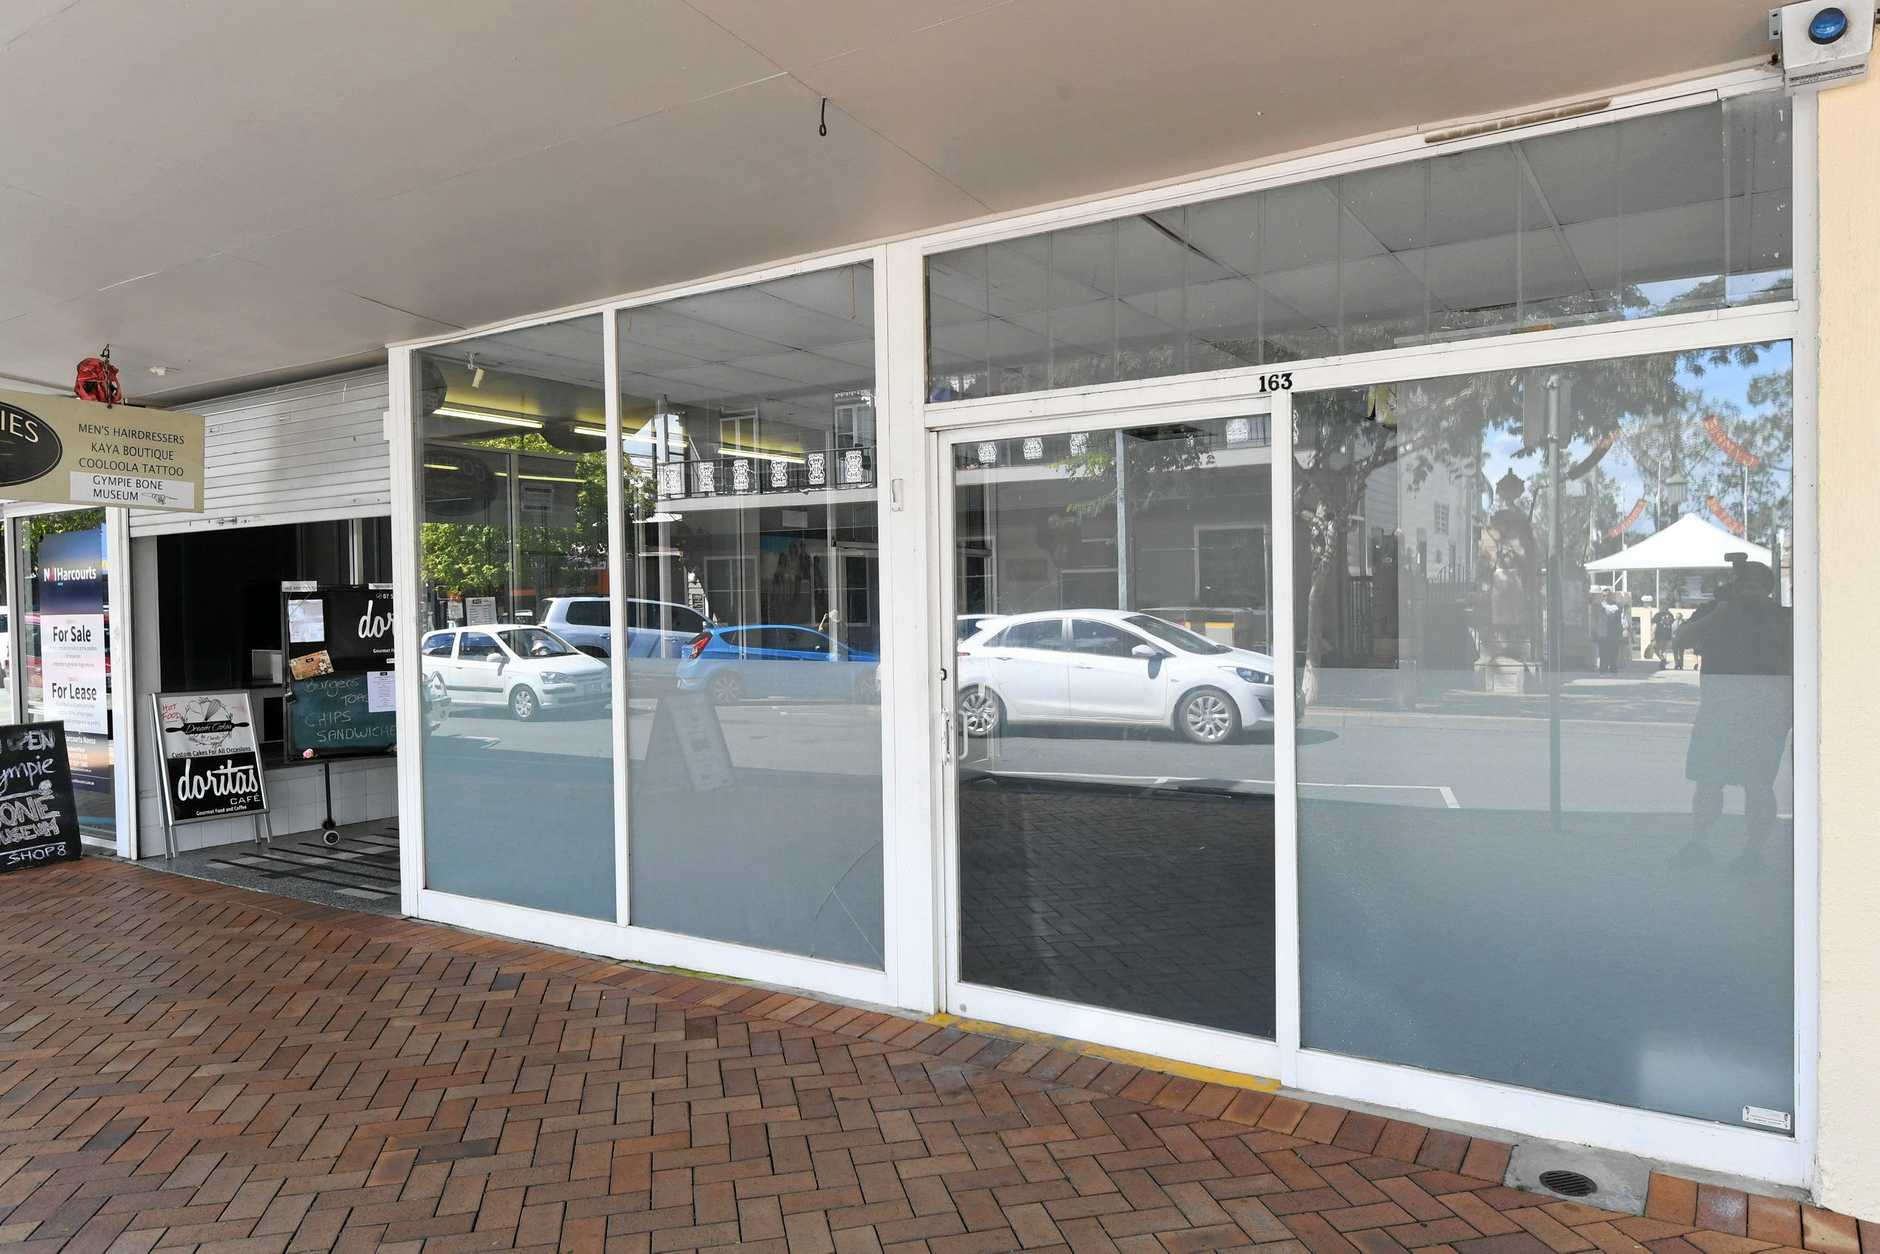 Empty shops in Gympie, Mary St.